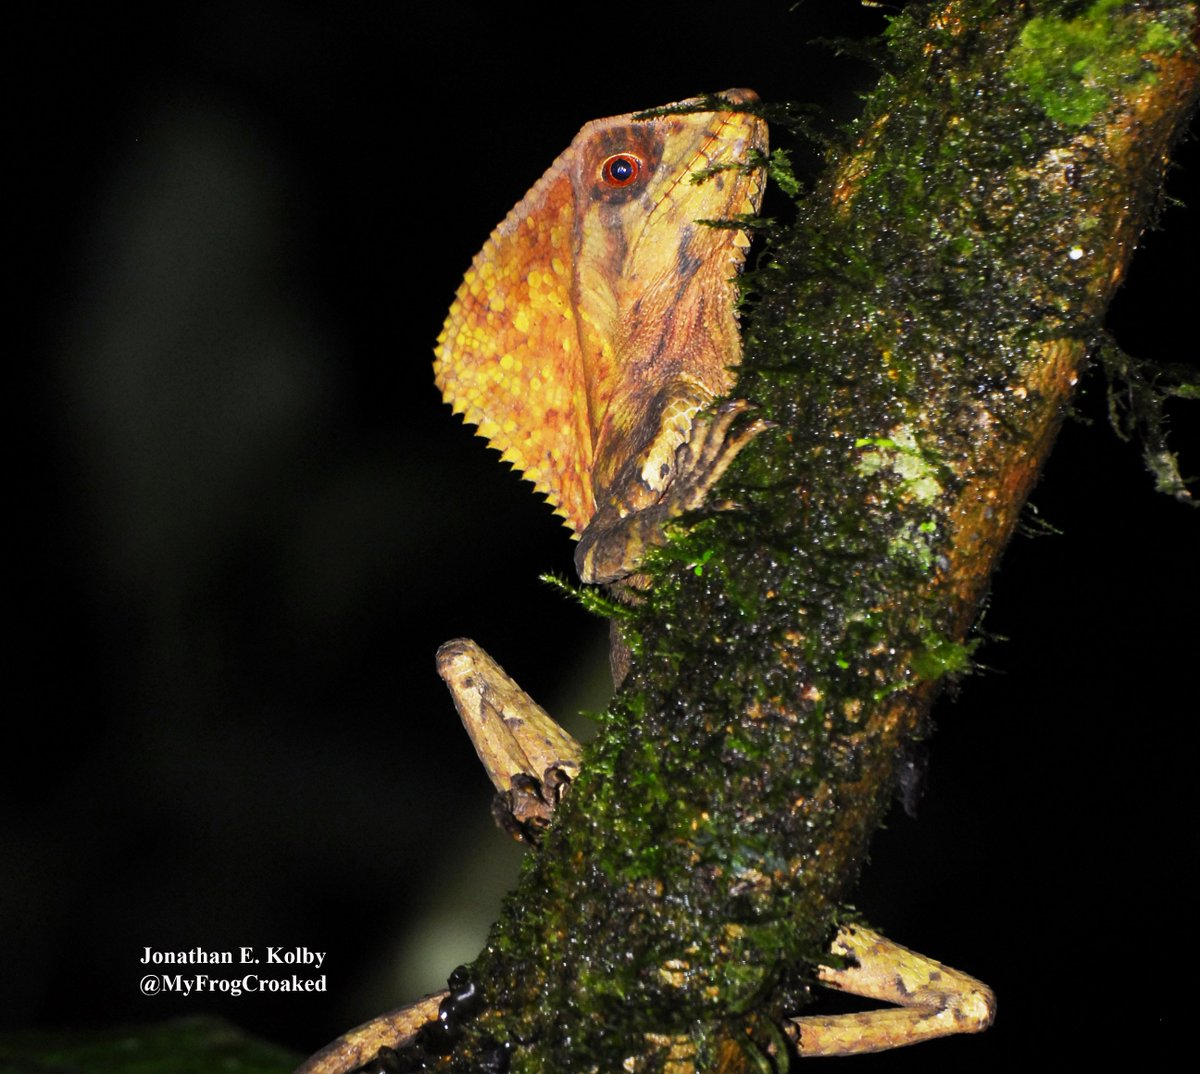 So much more than just frogs in the #HARCC cloud forest! Like lizards with mohawks! (Corytophanes cristatus) #TuesdayThoughts #TravelTuesday<br>http://pic.twitter.com/C2F8E3e9s5